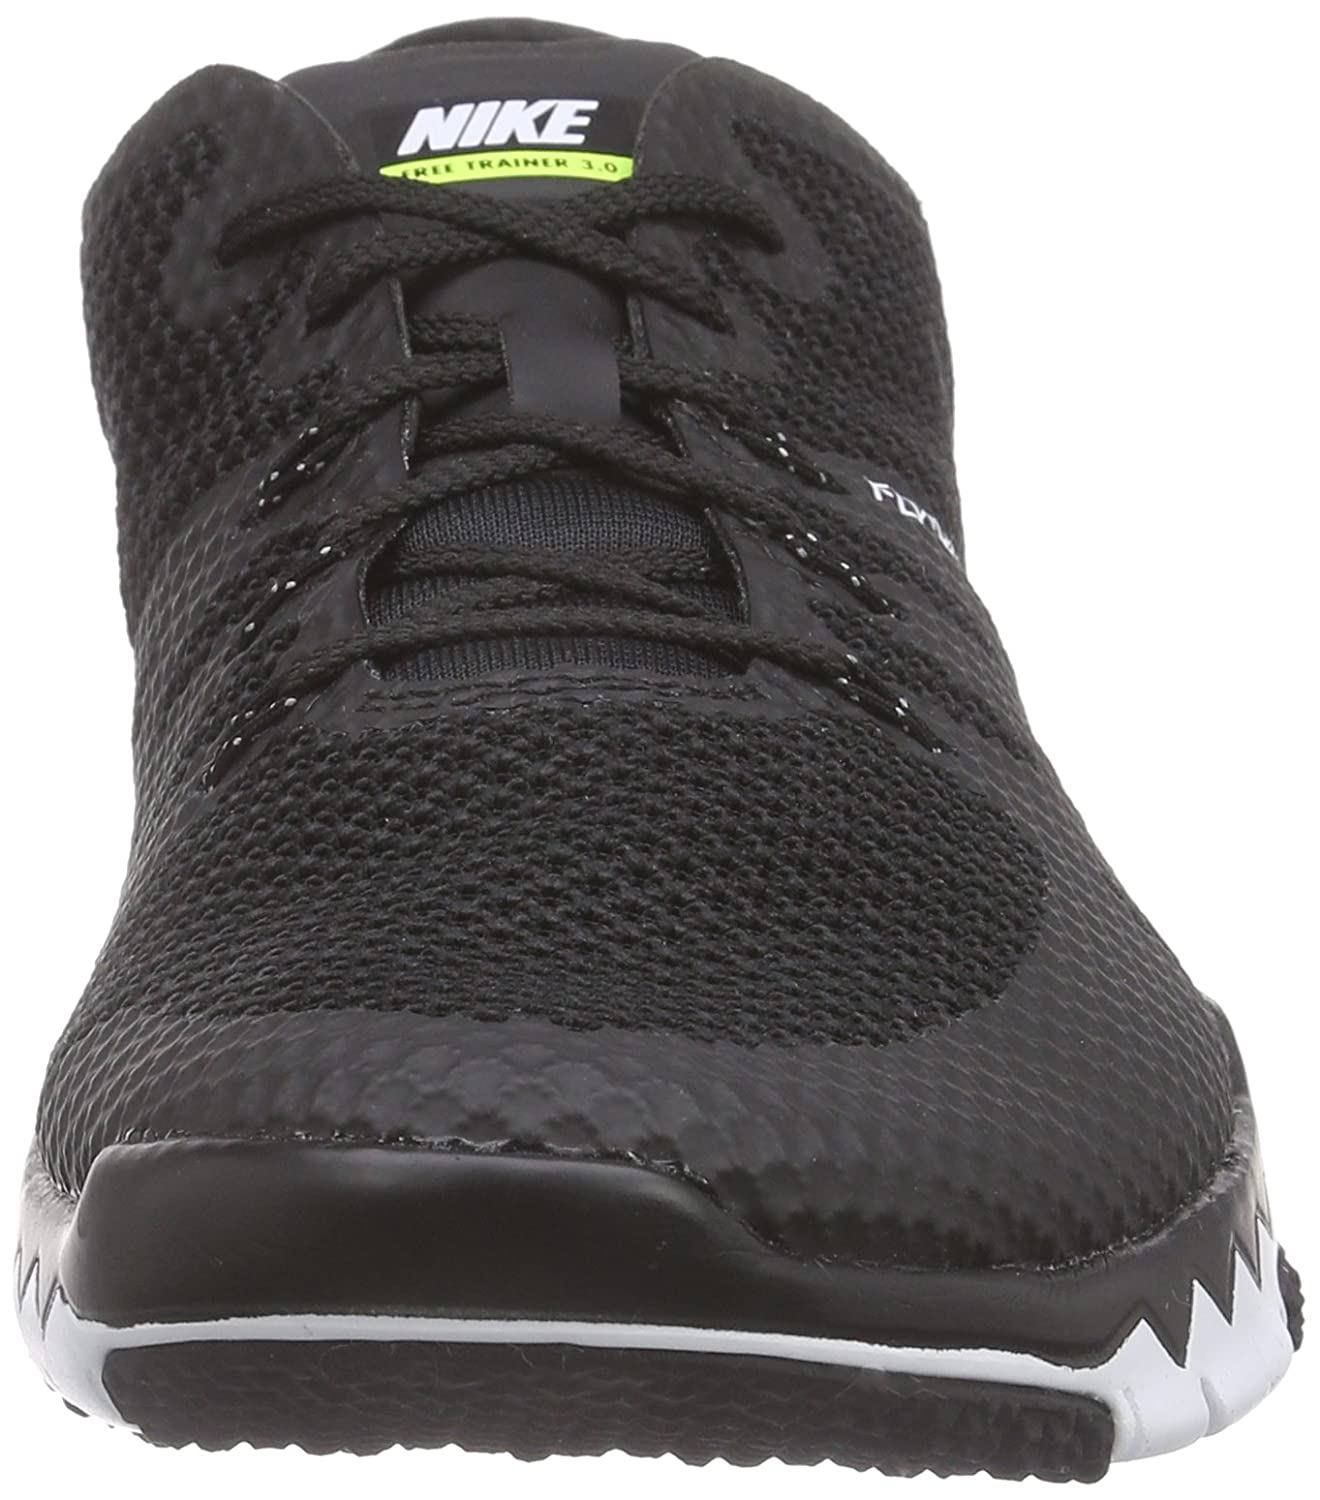 99334203c7fa1 ... low price amazon nike mens free trainer 3.0 v3 training shoe running  ac3ee 75ad9